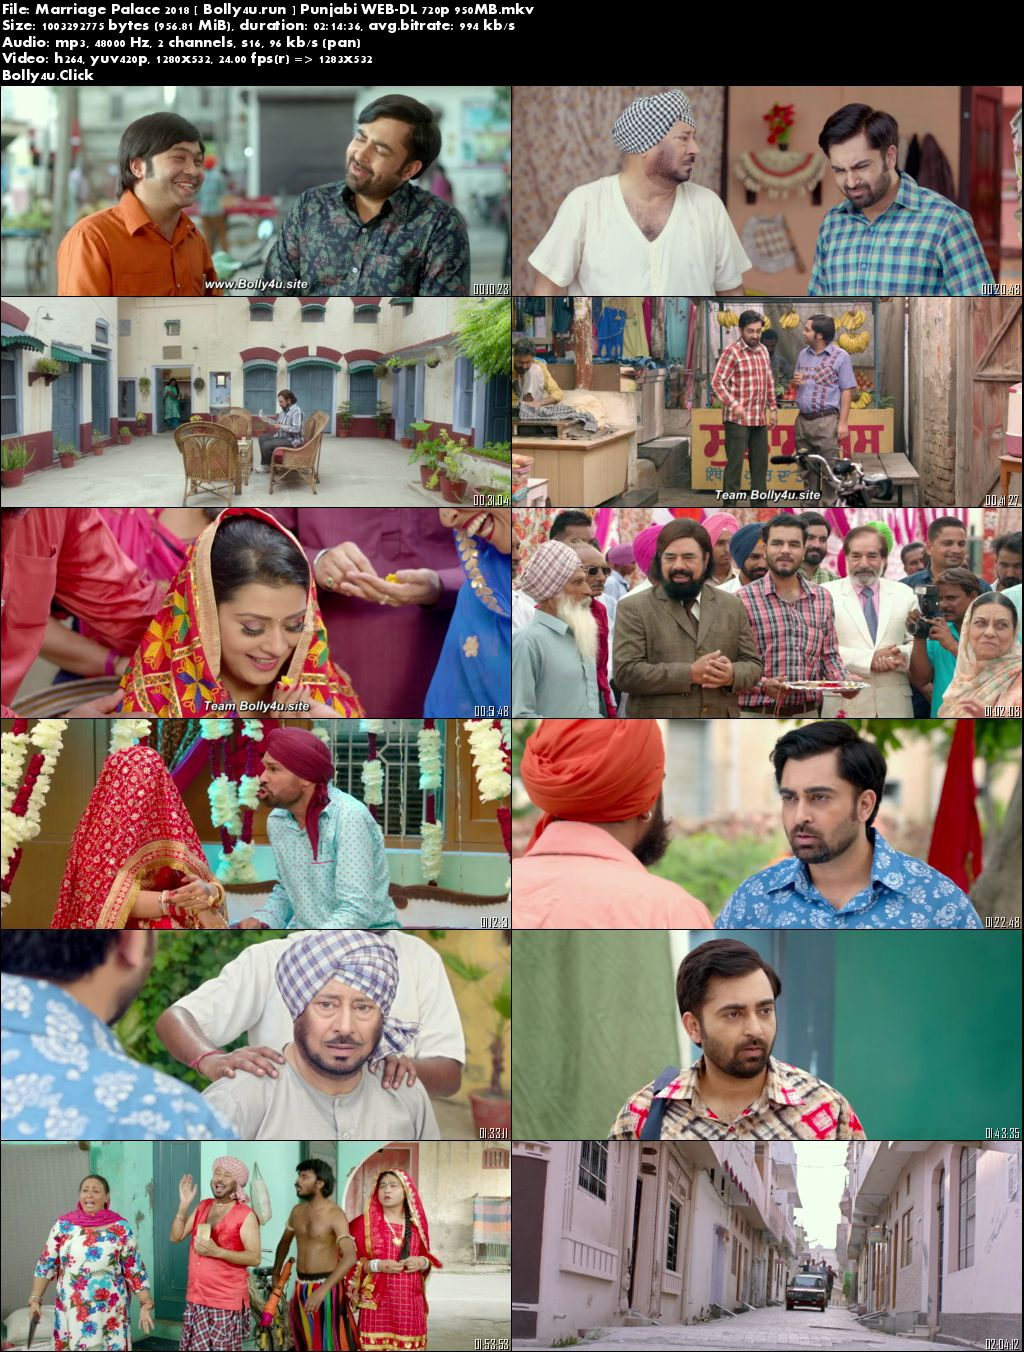 Marriage Palace 2018 WEB-DL 400Mb Punjabi 480p Download